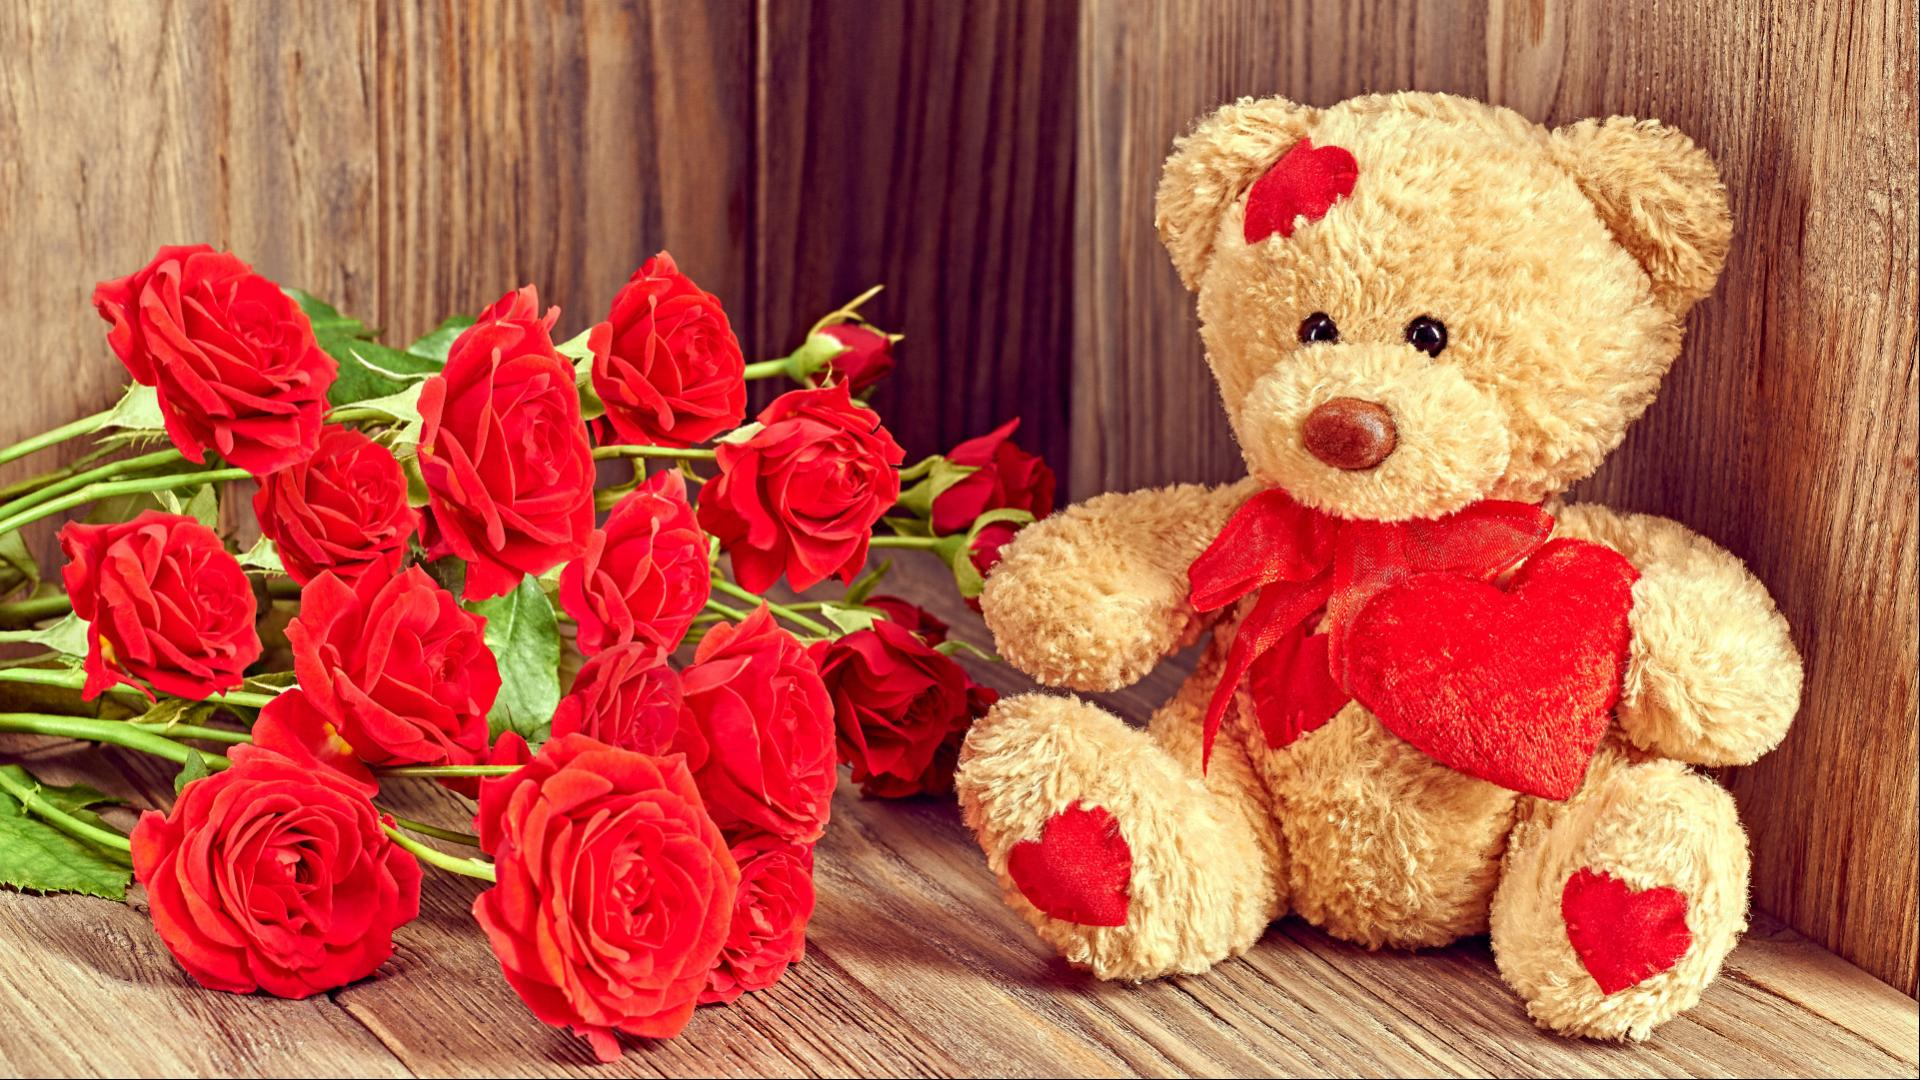 cute and romantic wallpaper with teddy bear images download | hd